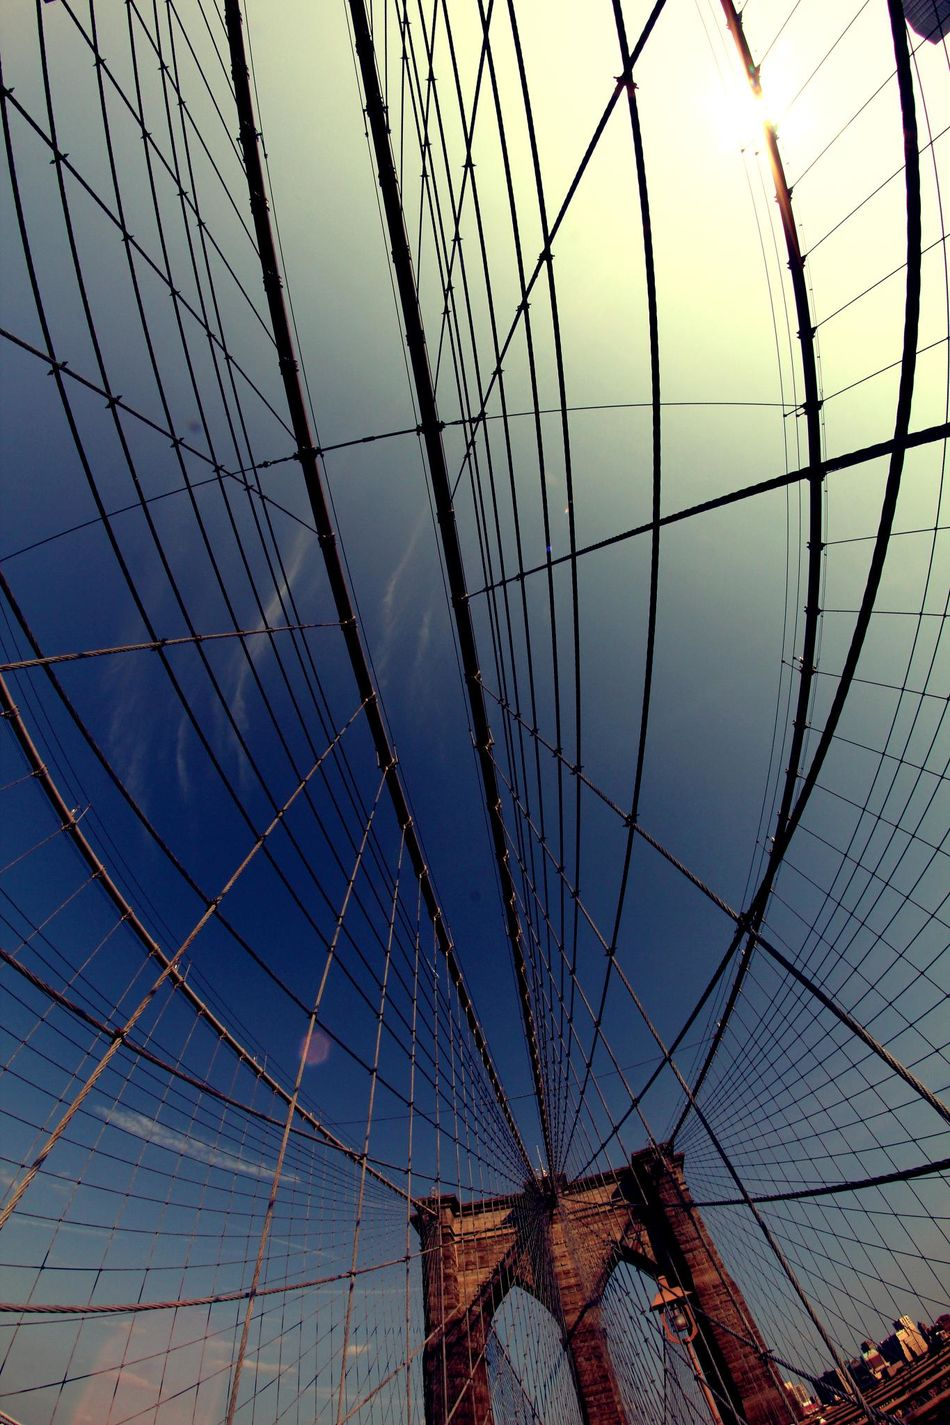 Fish eye view of one of the pillars of the famous Brooklyn Bridge in New York city Architecture Big Apple Bridge - Man Made Structure Brooklyn Bridge  Brooklyn Bridge / New York Building Exterior Built Structure City Connection Fisheye Low Angle View Modern New York New York City No People NYC NYC Photography Outdoors Sky Suspension Bridge Travel Destinations Urban Urban Skyline USA